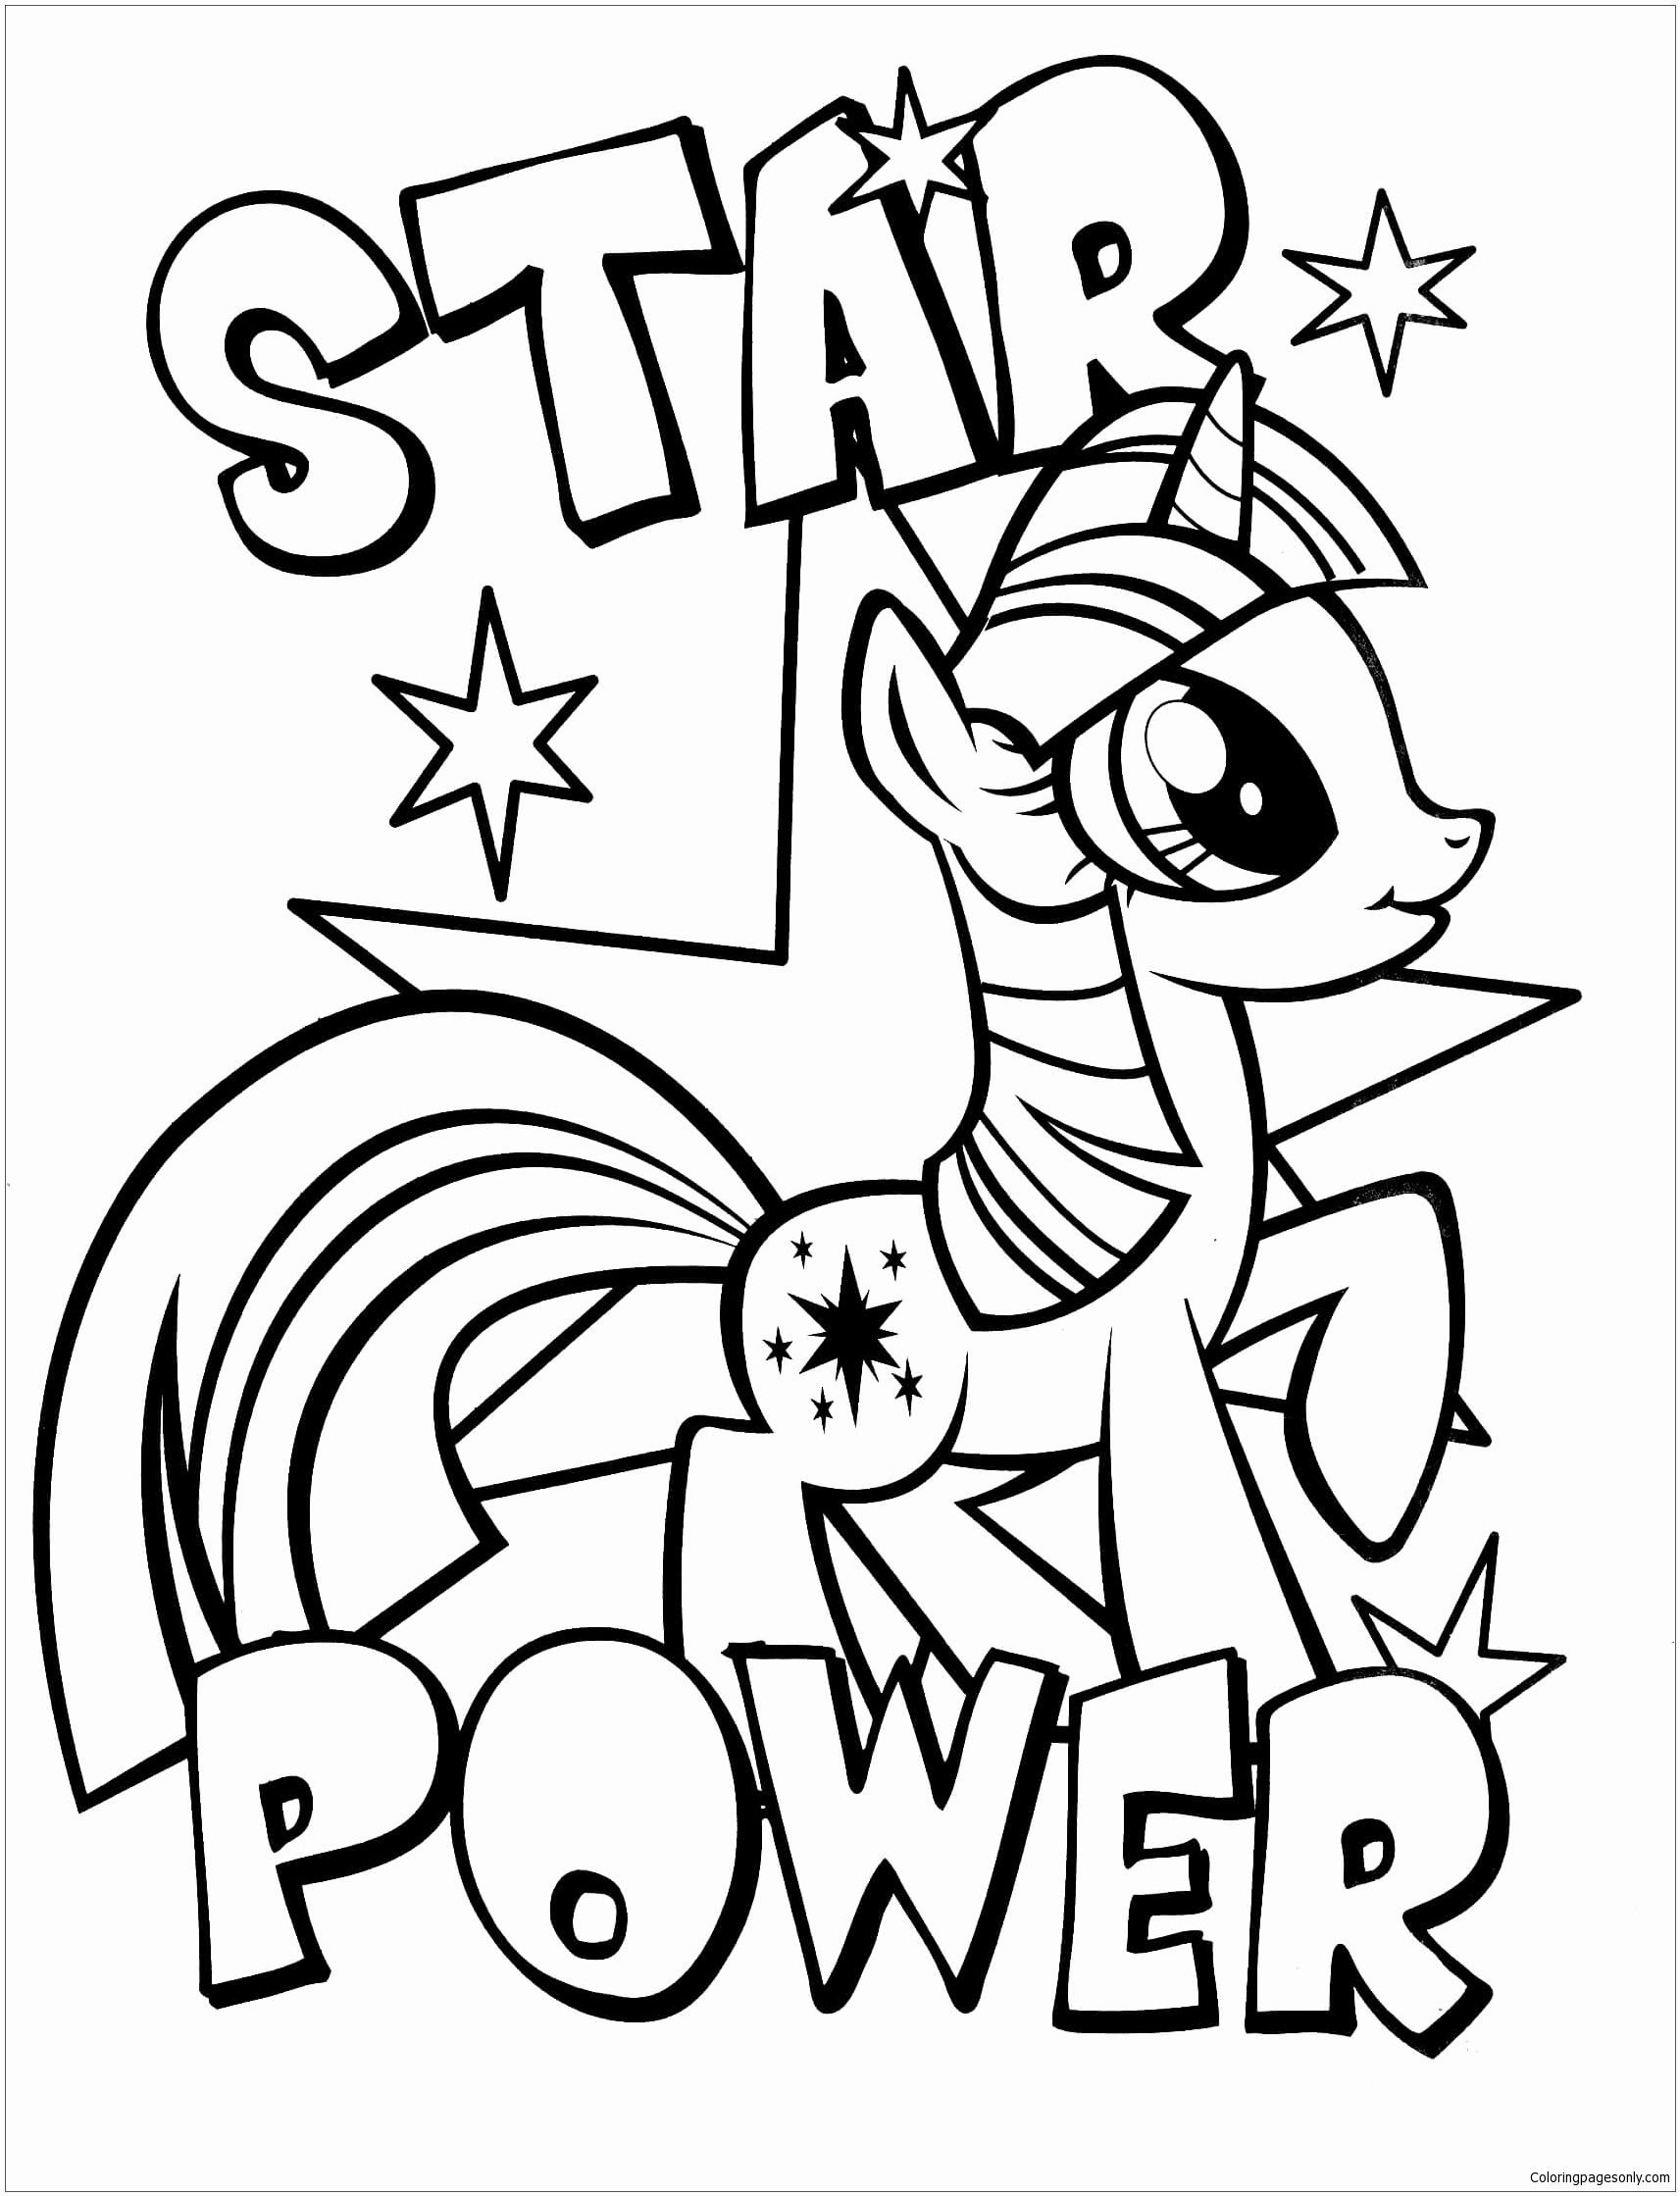 My Little Pony Coloring Pages For Kids Blank Unicorn Coloring Pages My Little Pony Coloring My Little Pony Printable